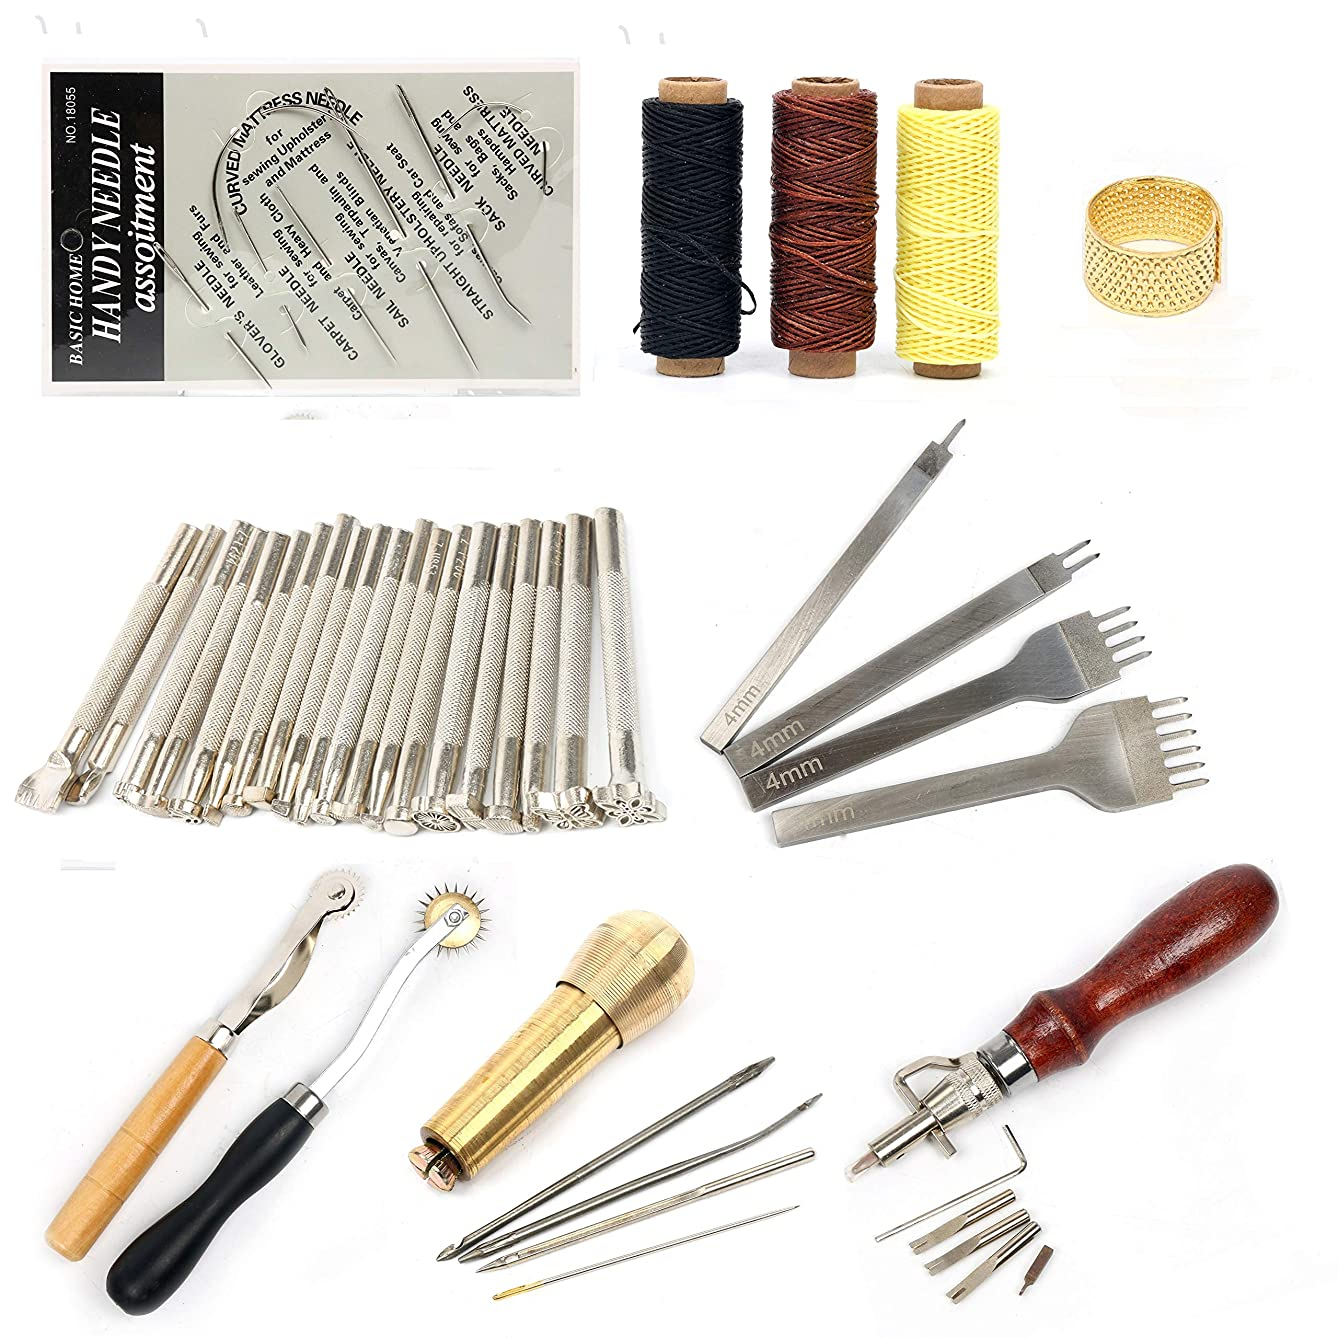 YaeTek 48Pcs Leather Craft Hand Tools Set Kit Sewing Stitching Thread Punch Carving Working